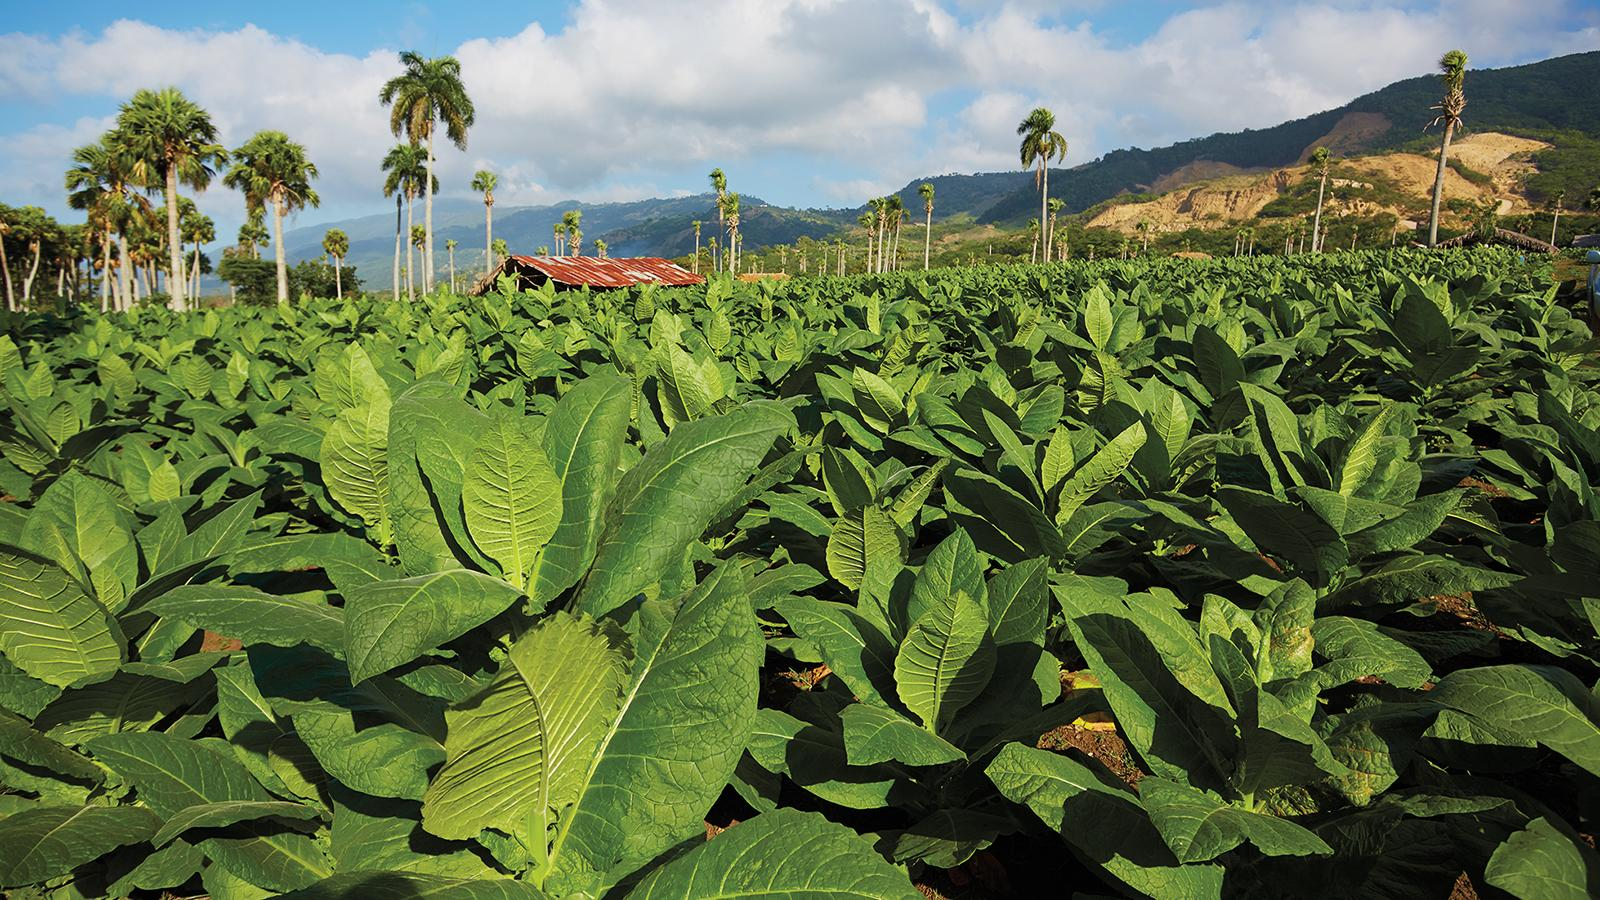 A field of sun-grown tobacco flourishes in a valley in the Dominican Republic. The crops grow from natural fertilizer.